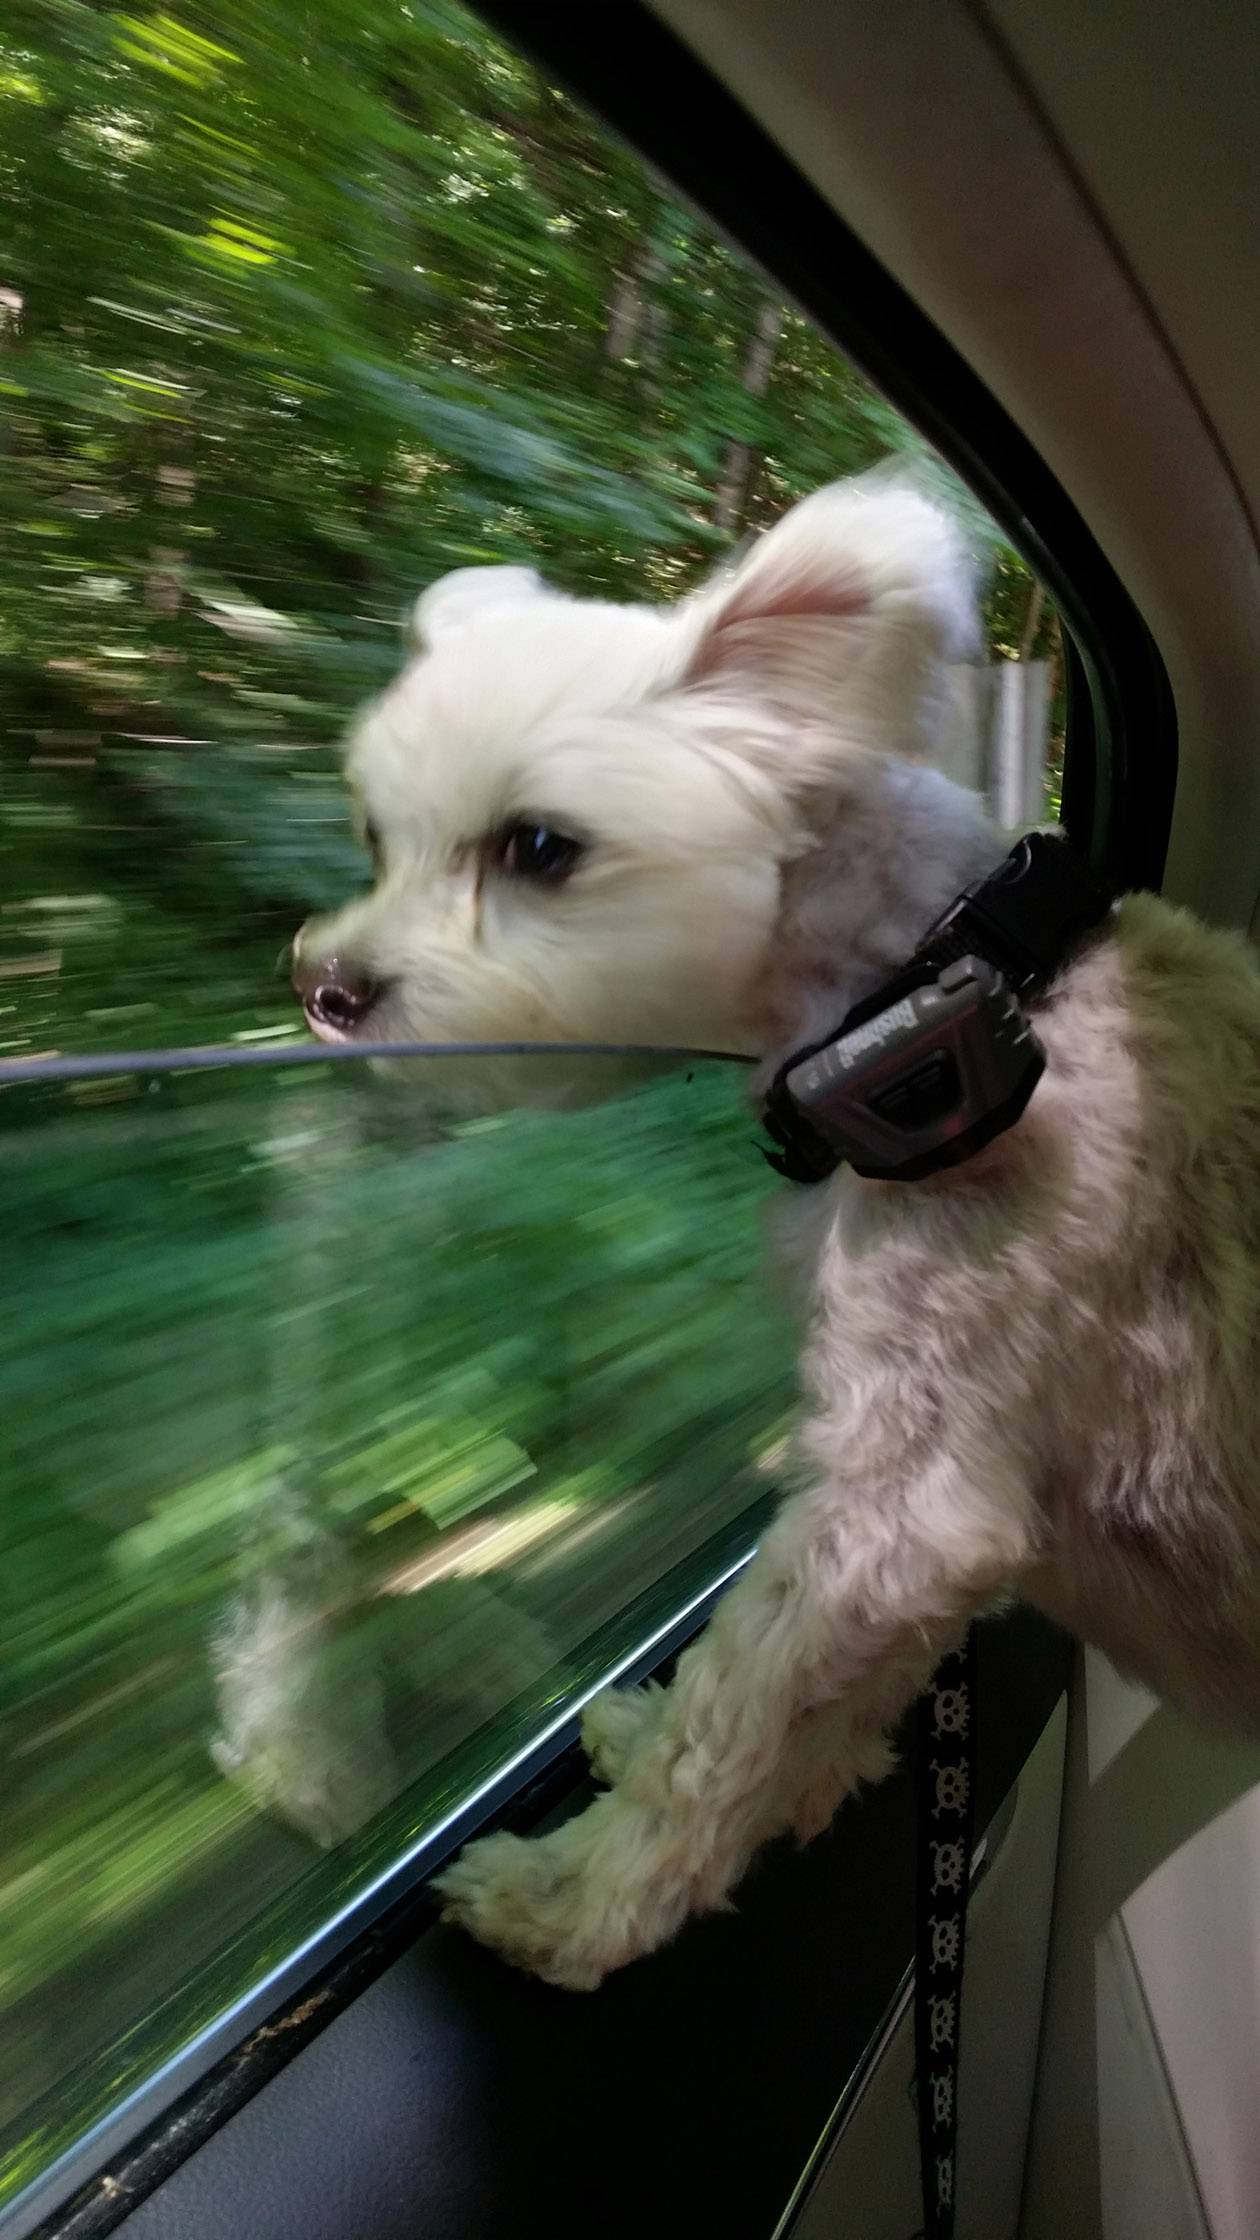 A dog named Yippie is loving life as it hangs out a car window on the way to Starved Rock.